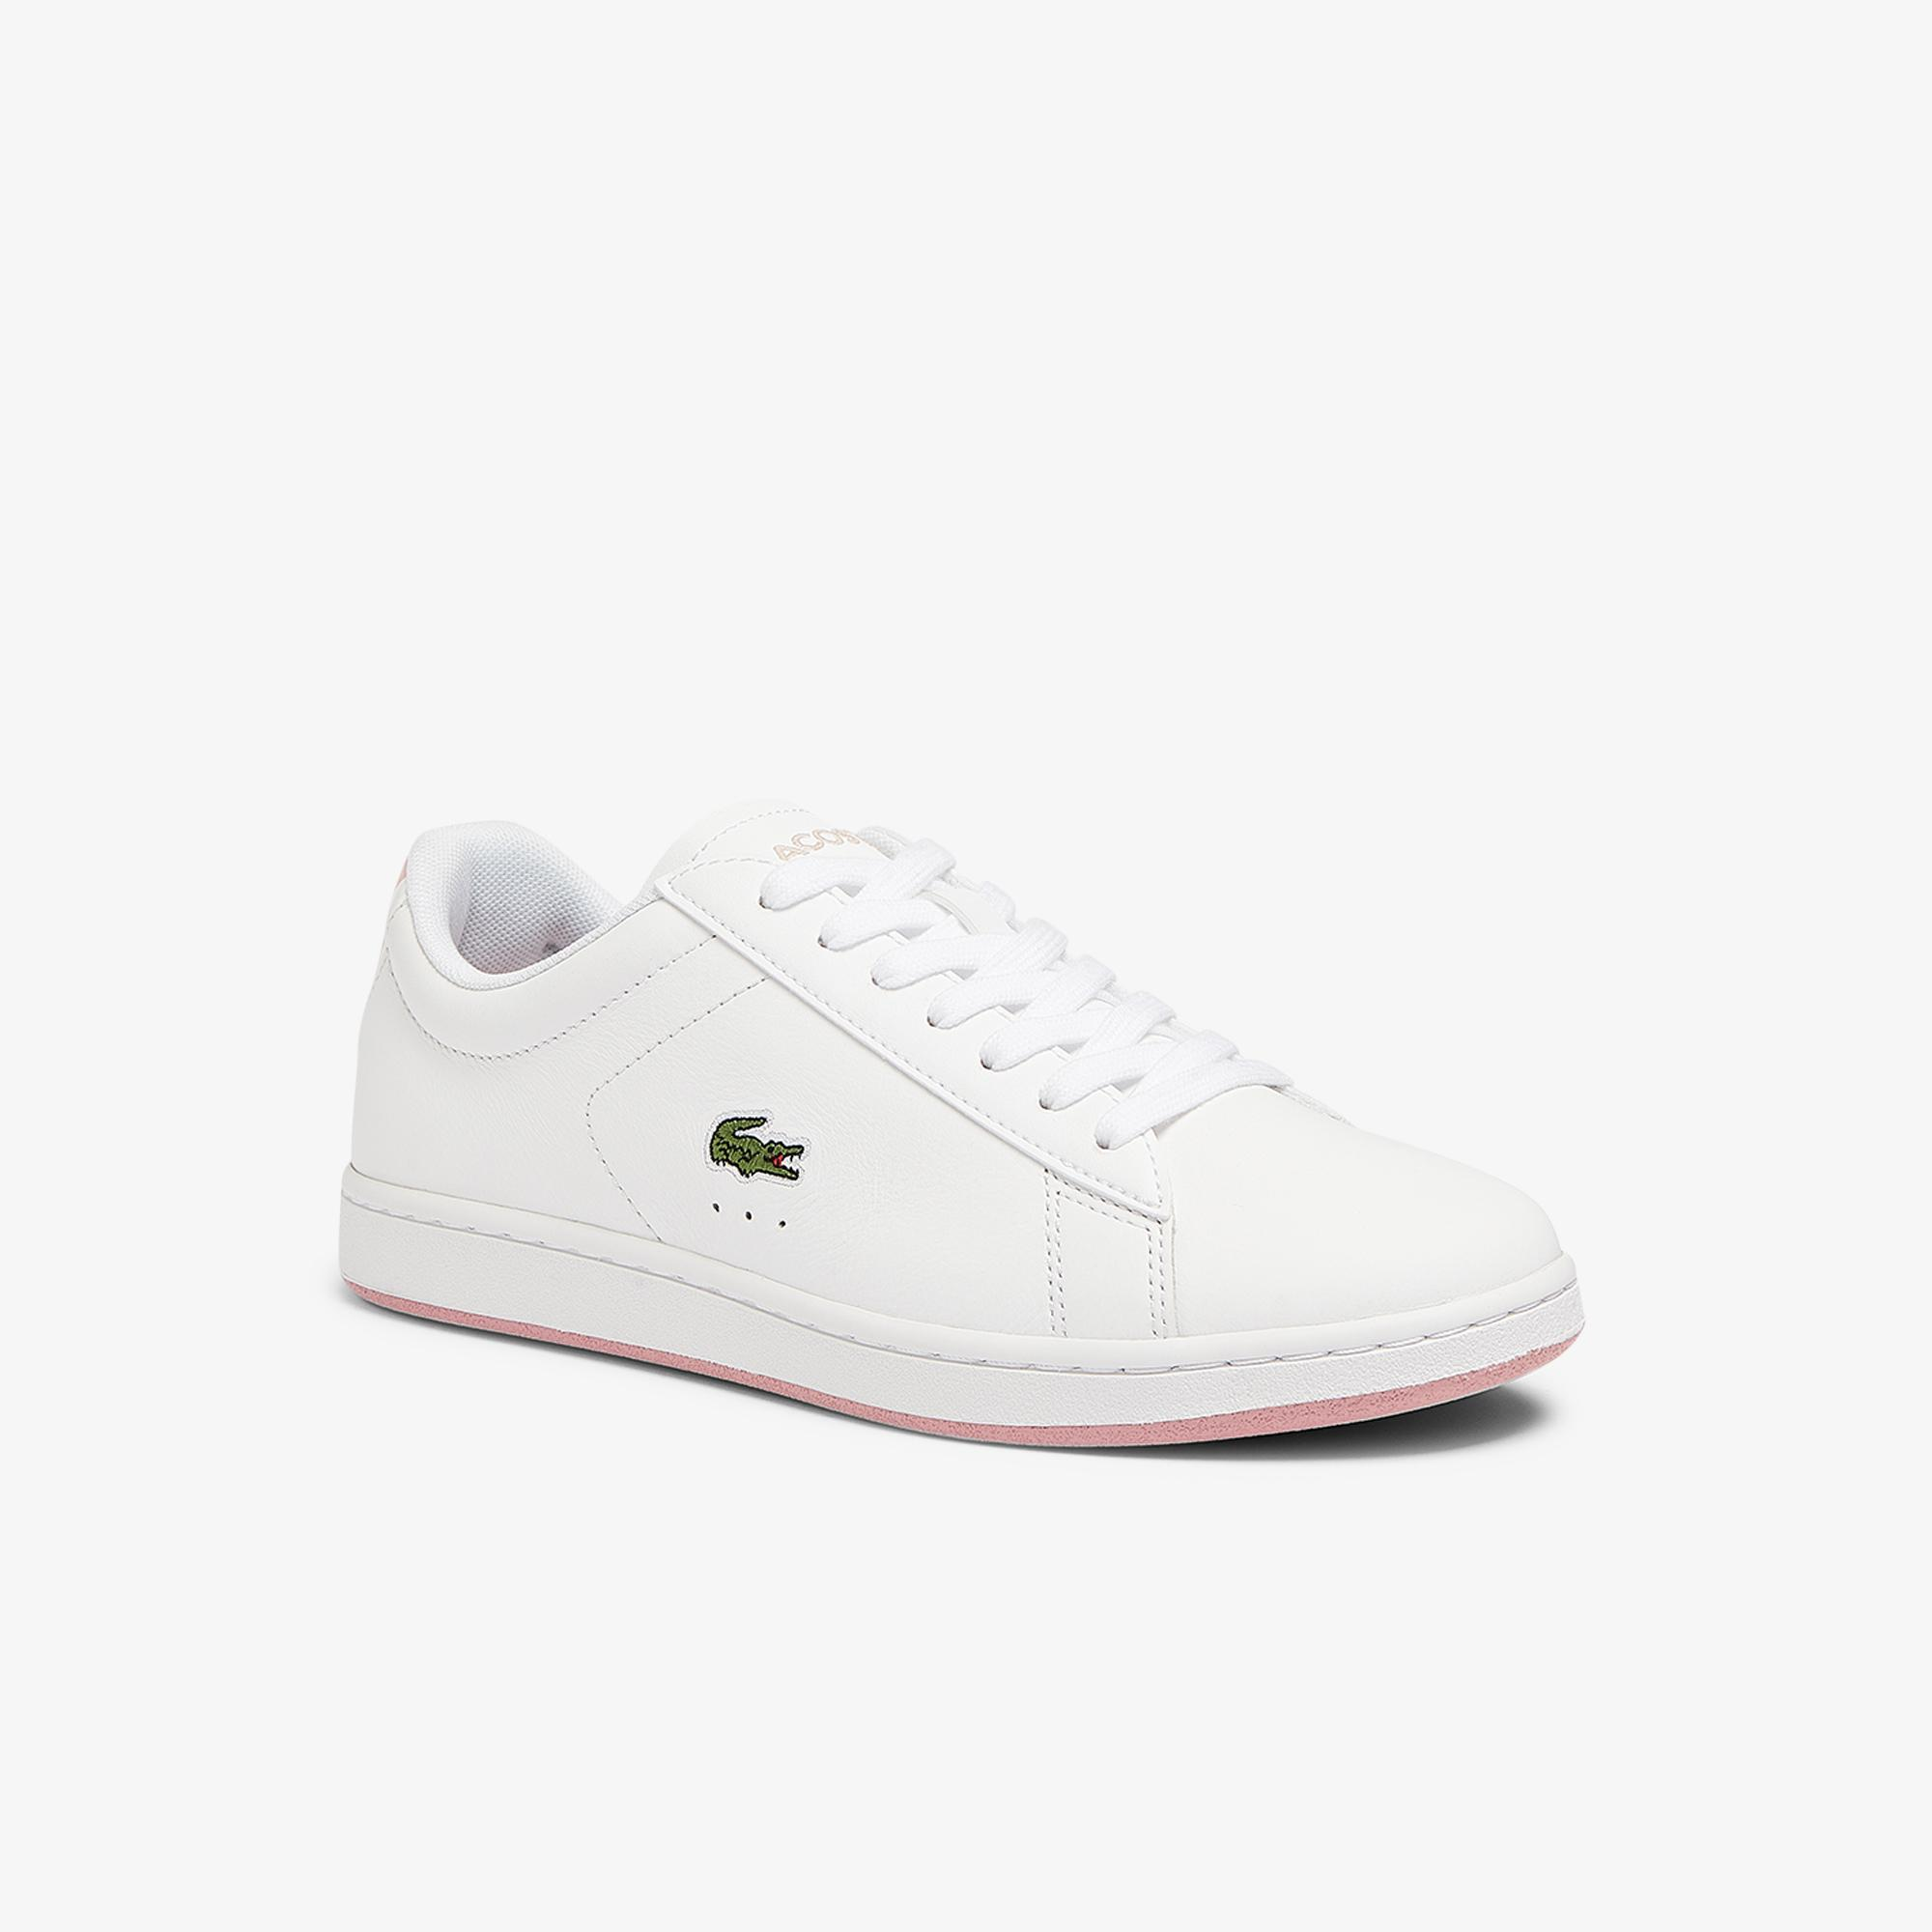 Lacoste Women's Carnaby Evo 0721 2 Sfa Shoes